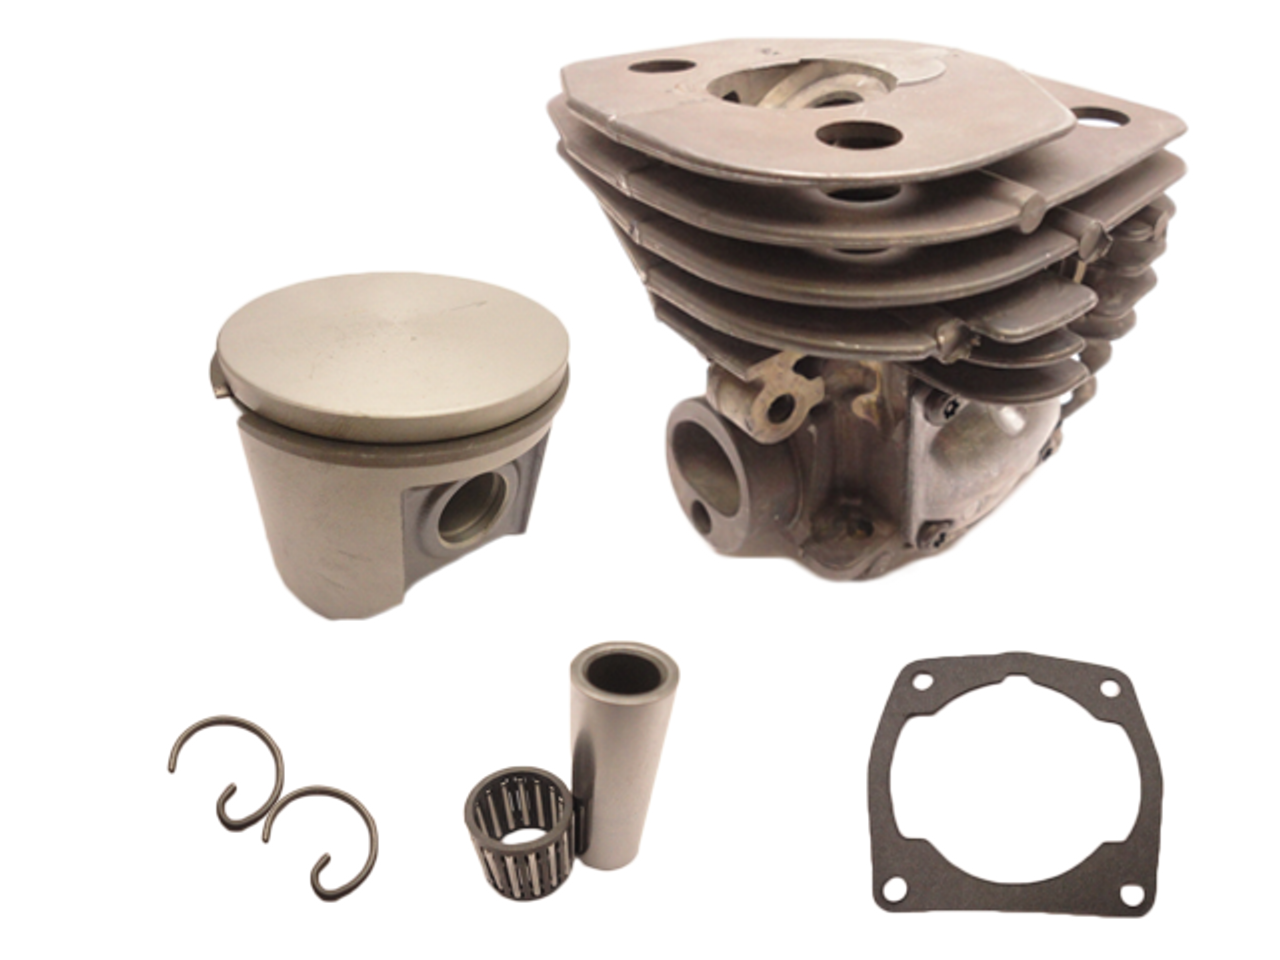 OEM 47M Nikasil Plated Cylinder Kit With Rings Fits Husqvarna 357, 359, Jonsered 2156 And 2159 537157302